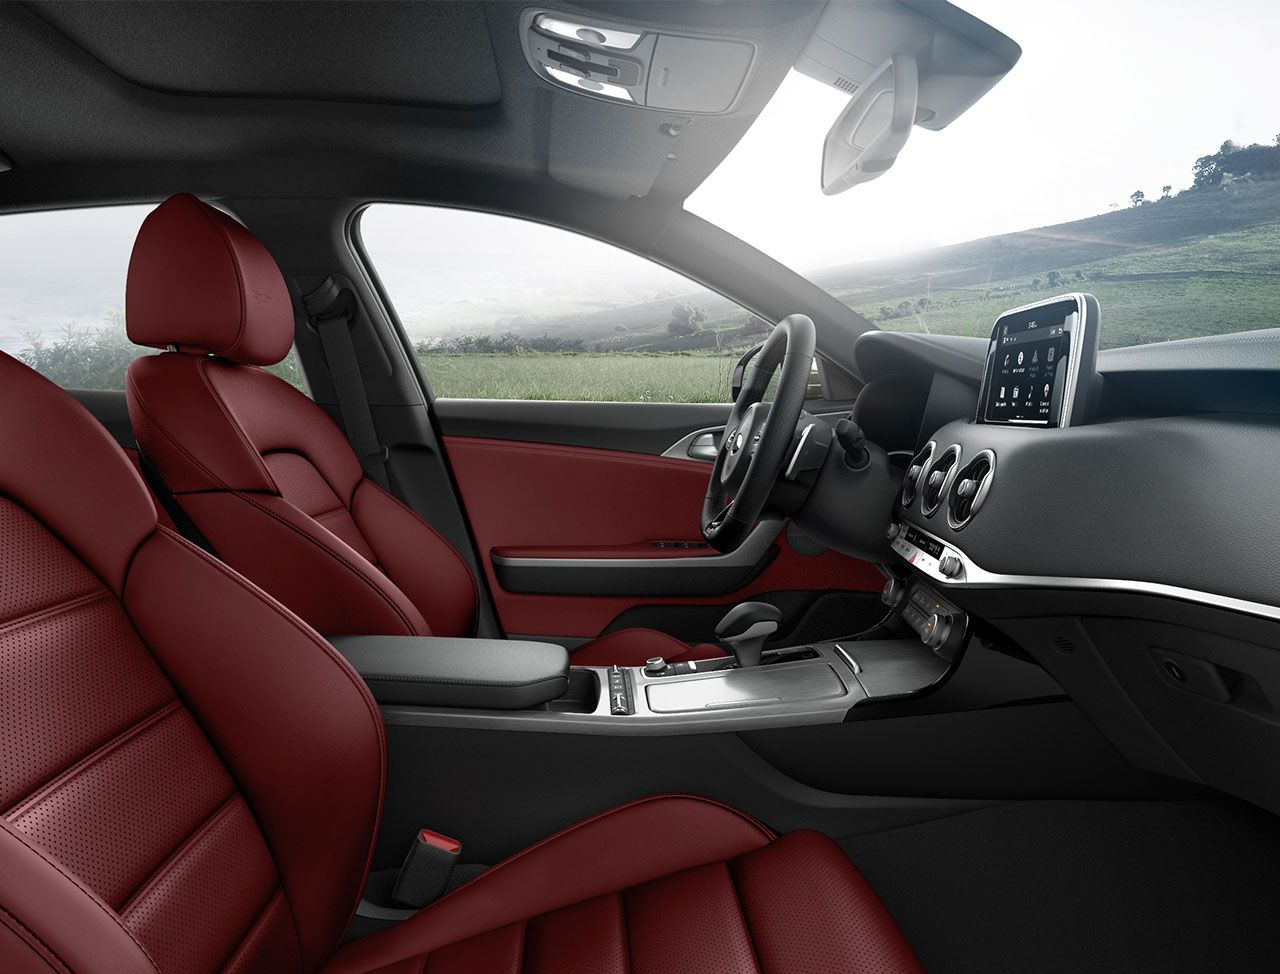 Interior of the 2019 Kia Stinger